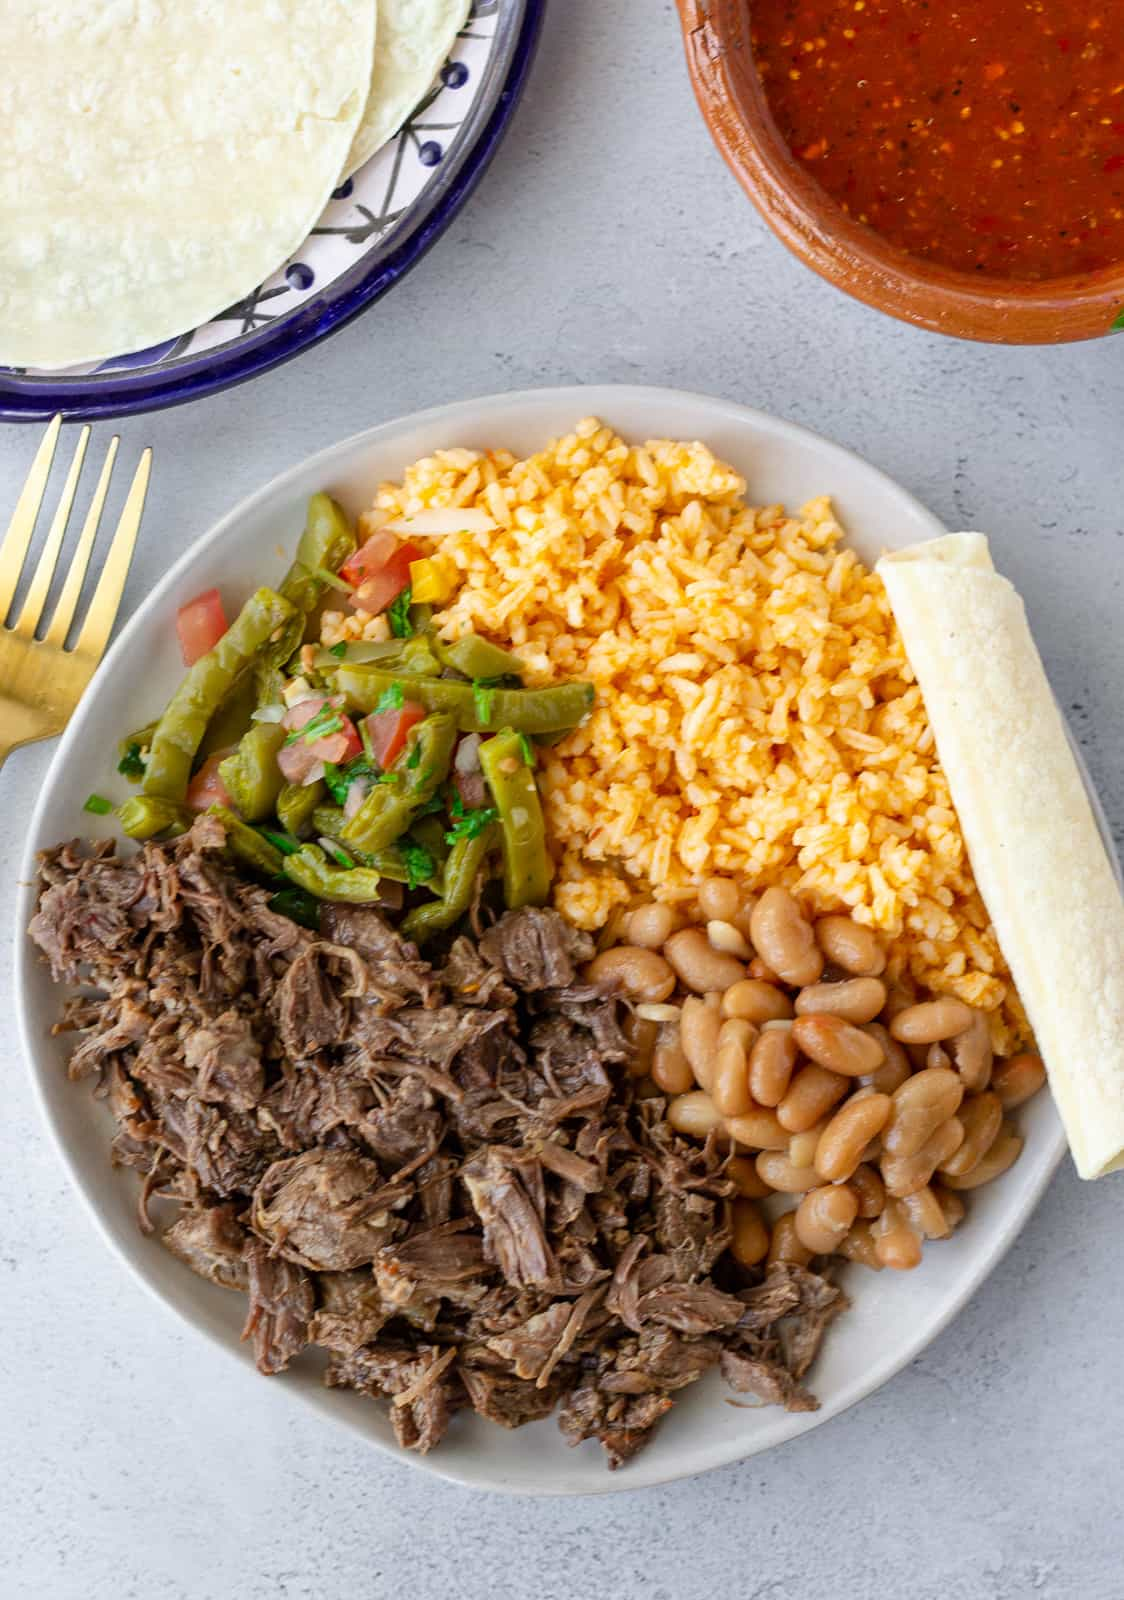 Overhead view of barbacoa on plate with beans, rice, cactus salad, and a rolled tortilla.